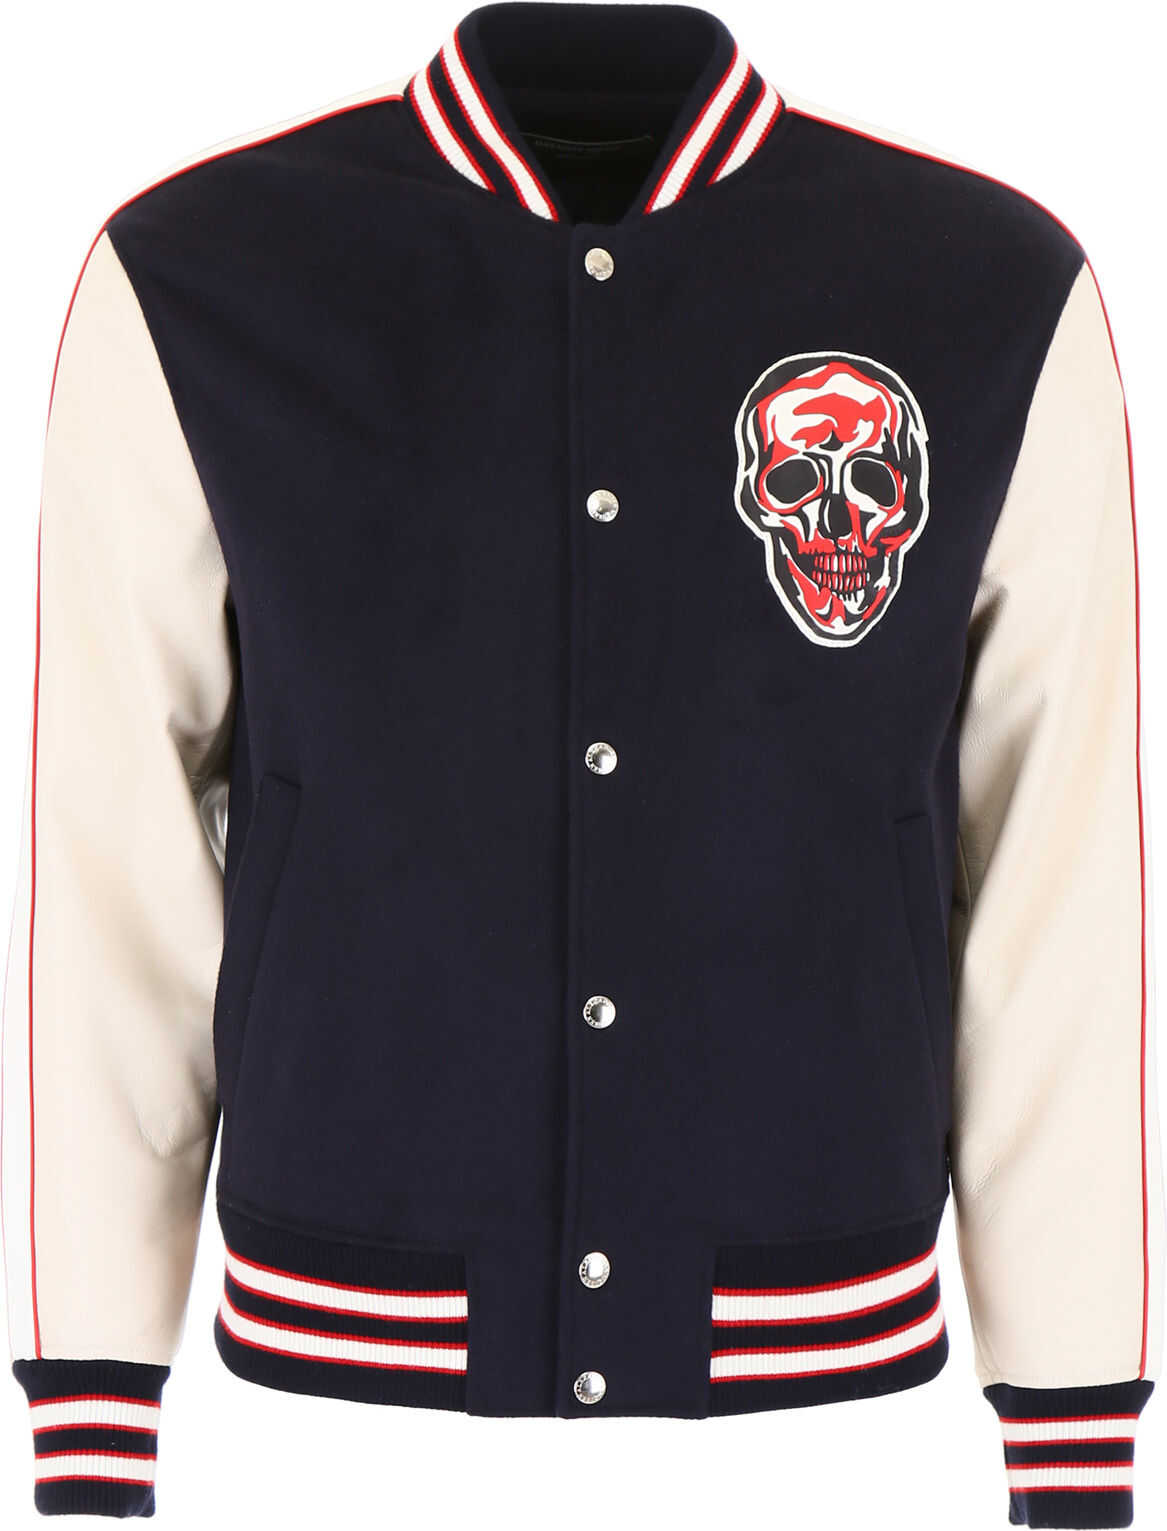 Alexander McQueen Bomber Jacket With Skull Patch NAVY IVORY WHITE RED